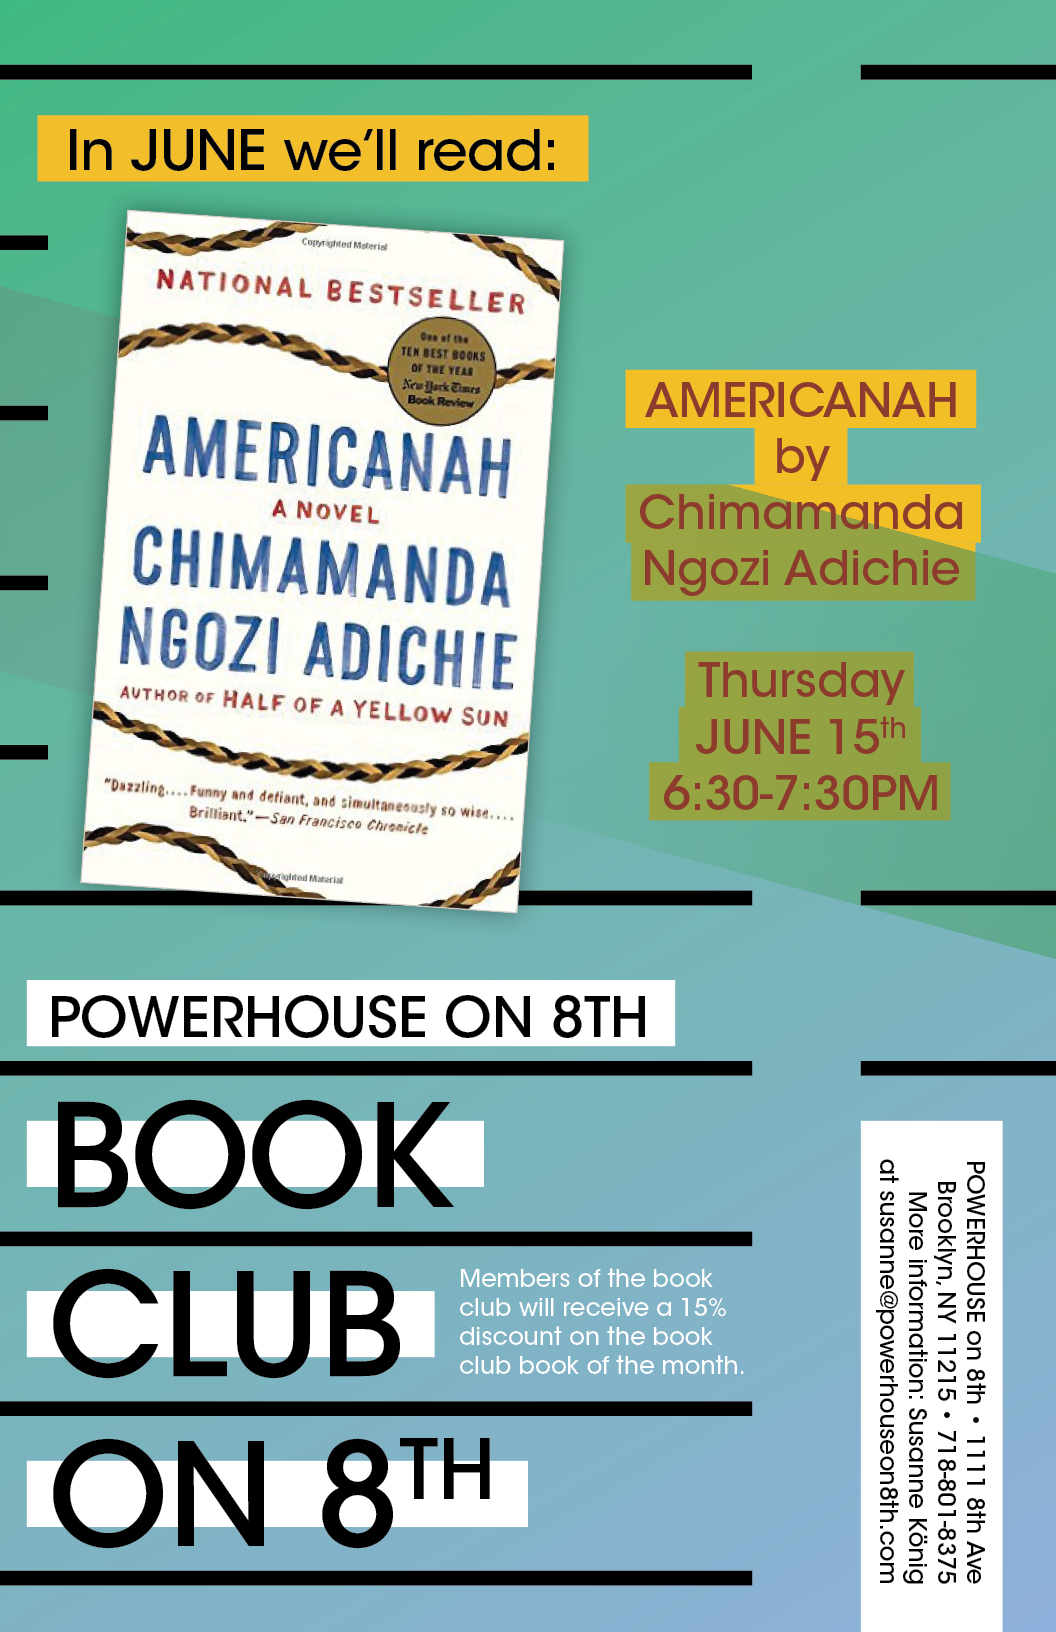 Book Club on 8th: Americanah by Chimamanda Ngozi Adichie